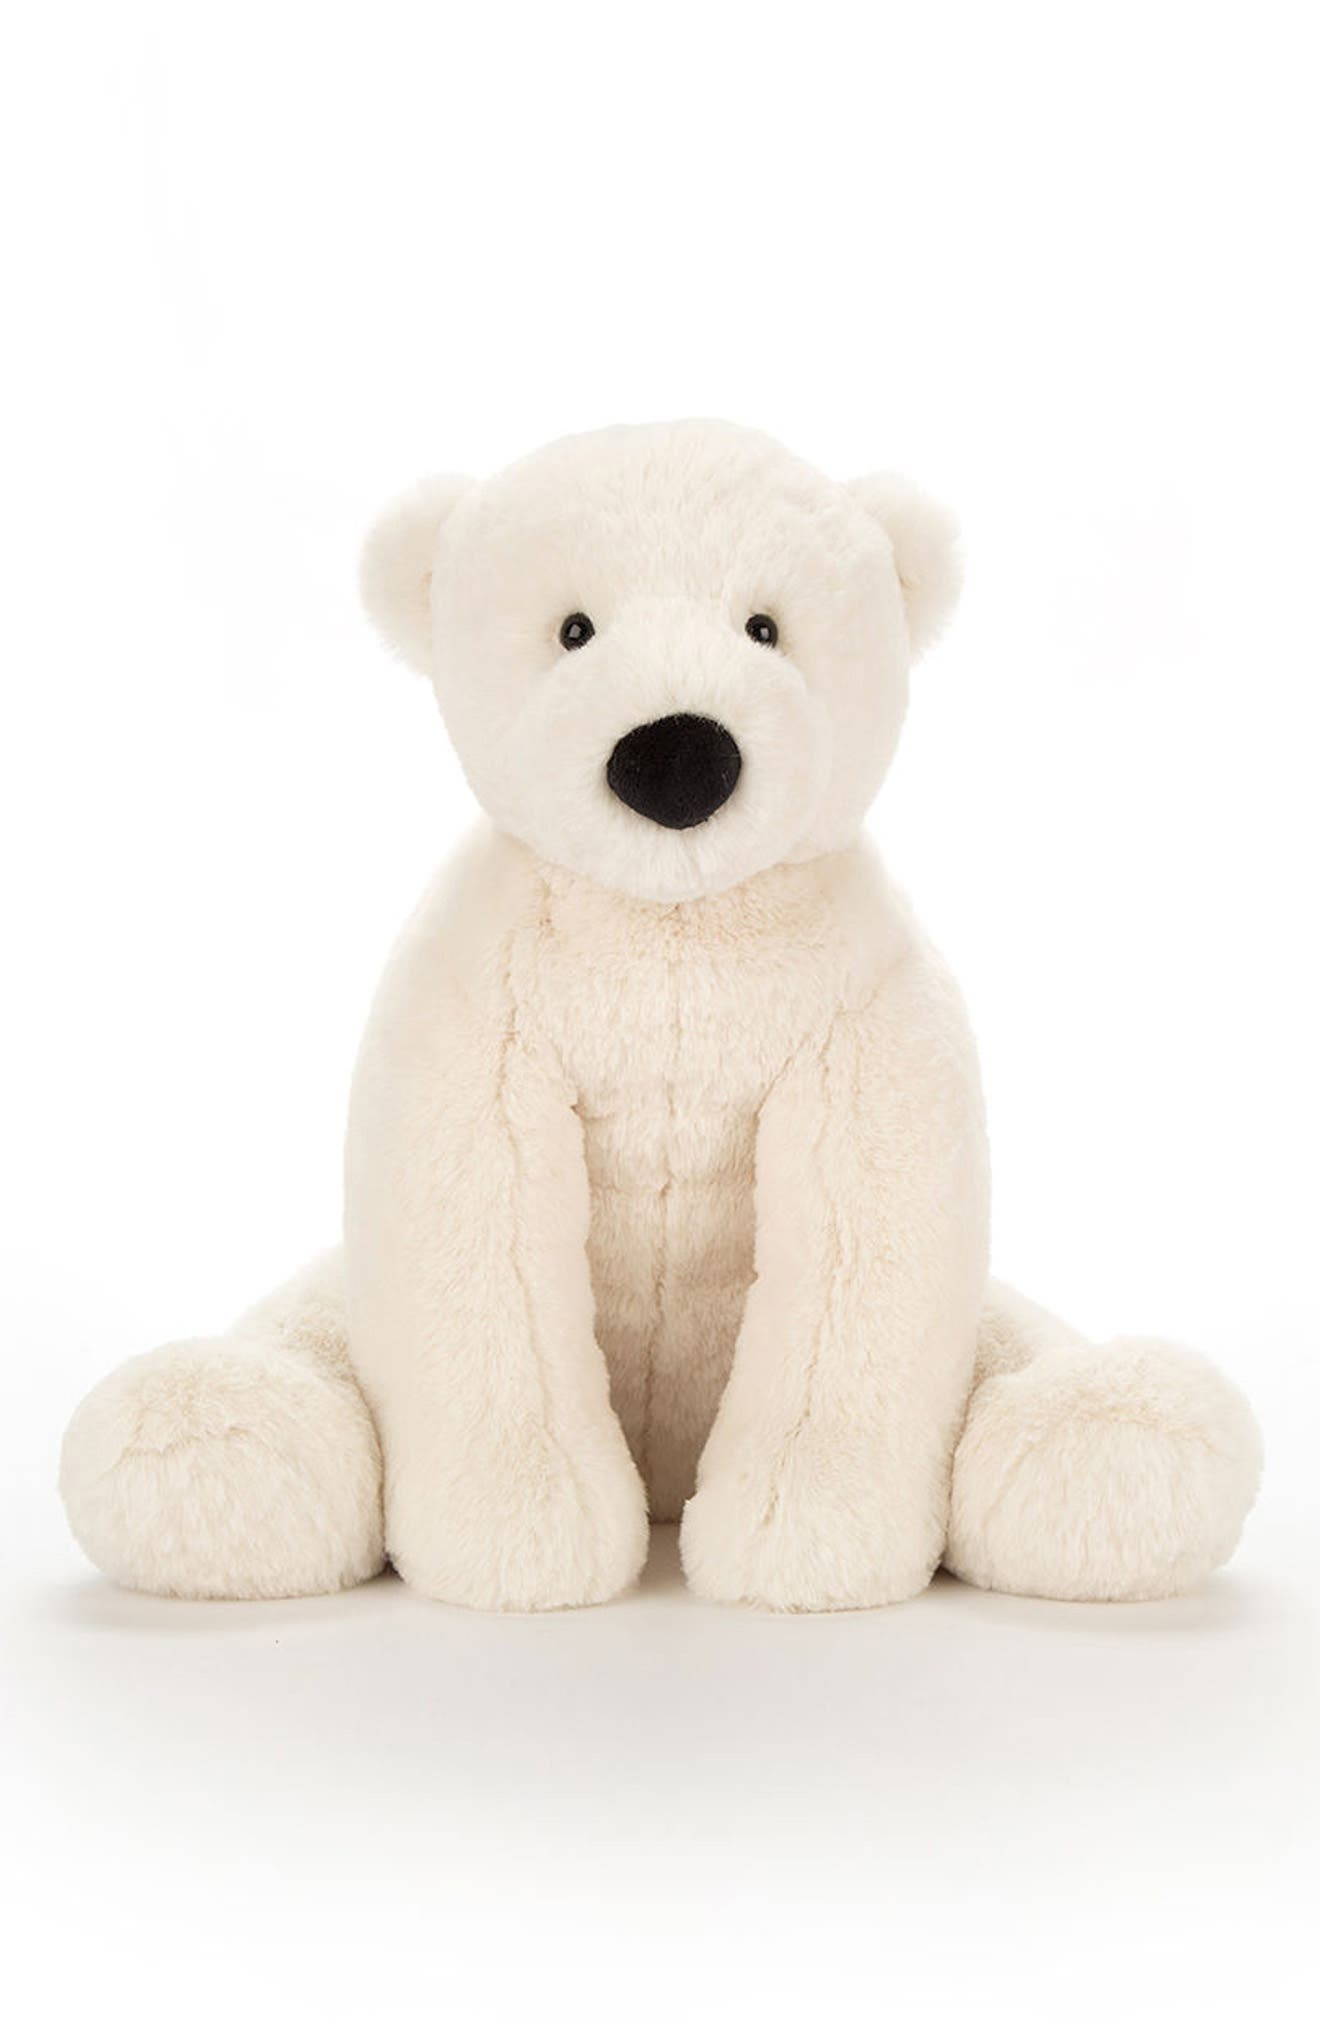 Alternate Image 1 Selected - Jellycat Perry Polar Bear Stuffed Animal